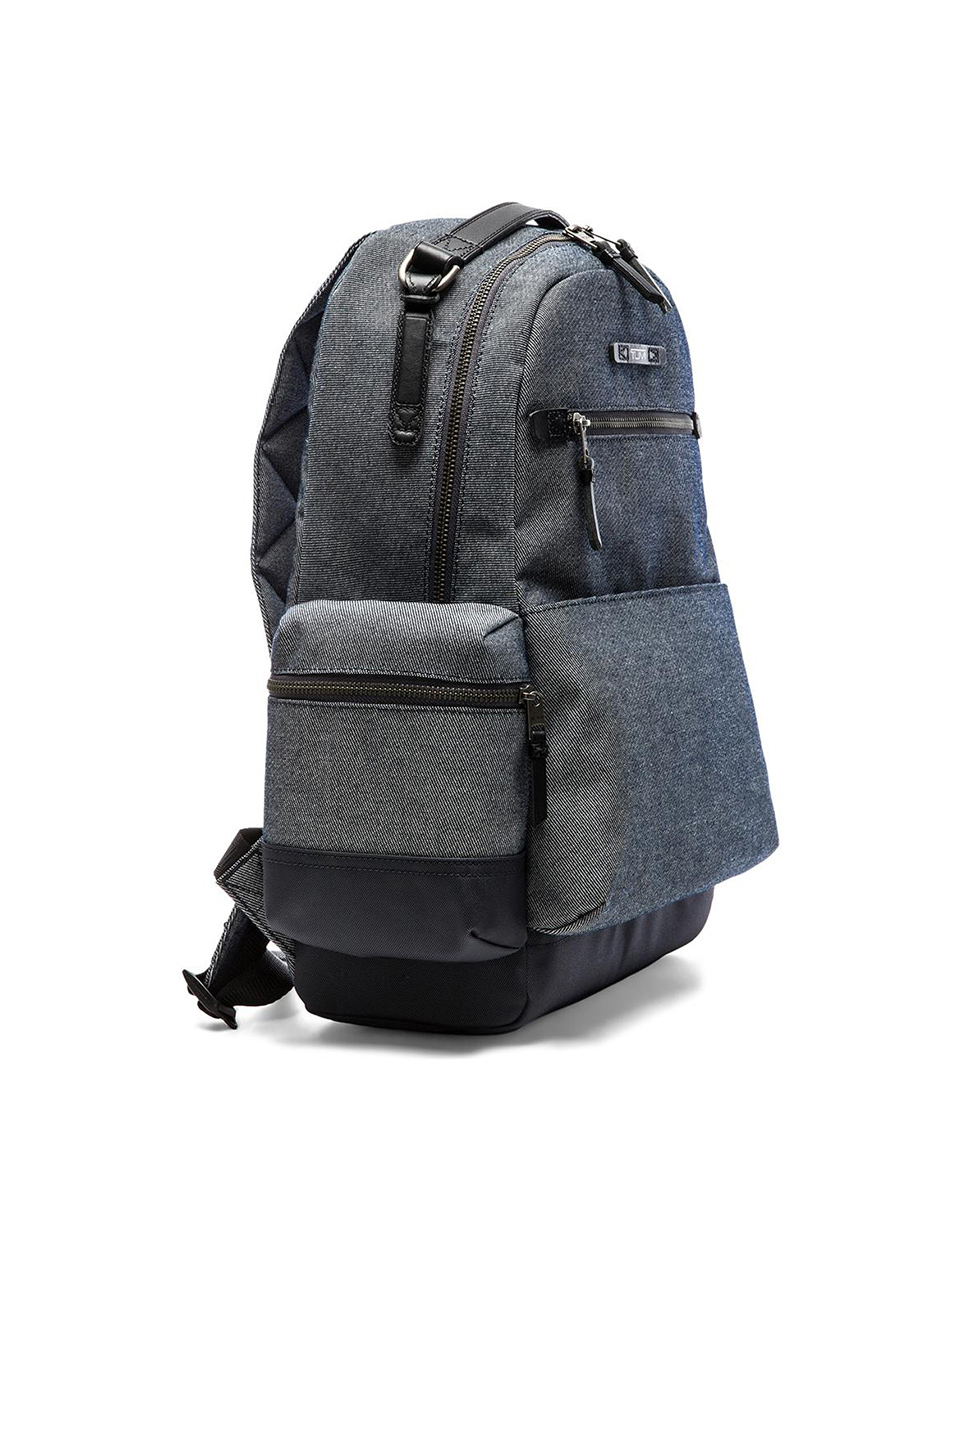 Tumi Dalston Massie Backpack In Gray For Men Lyst